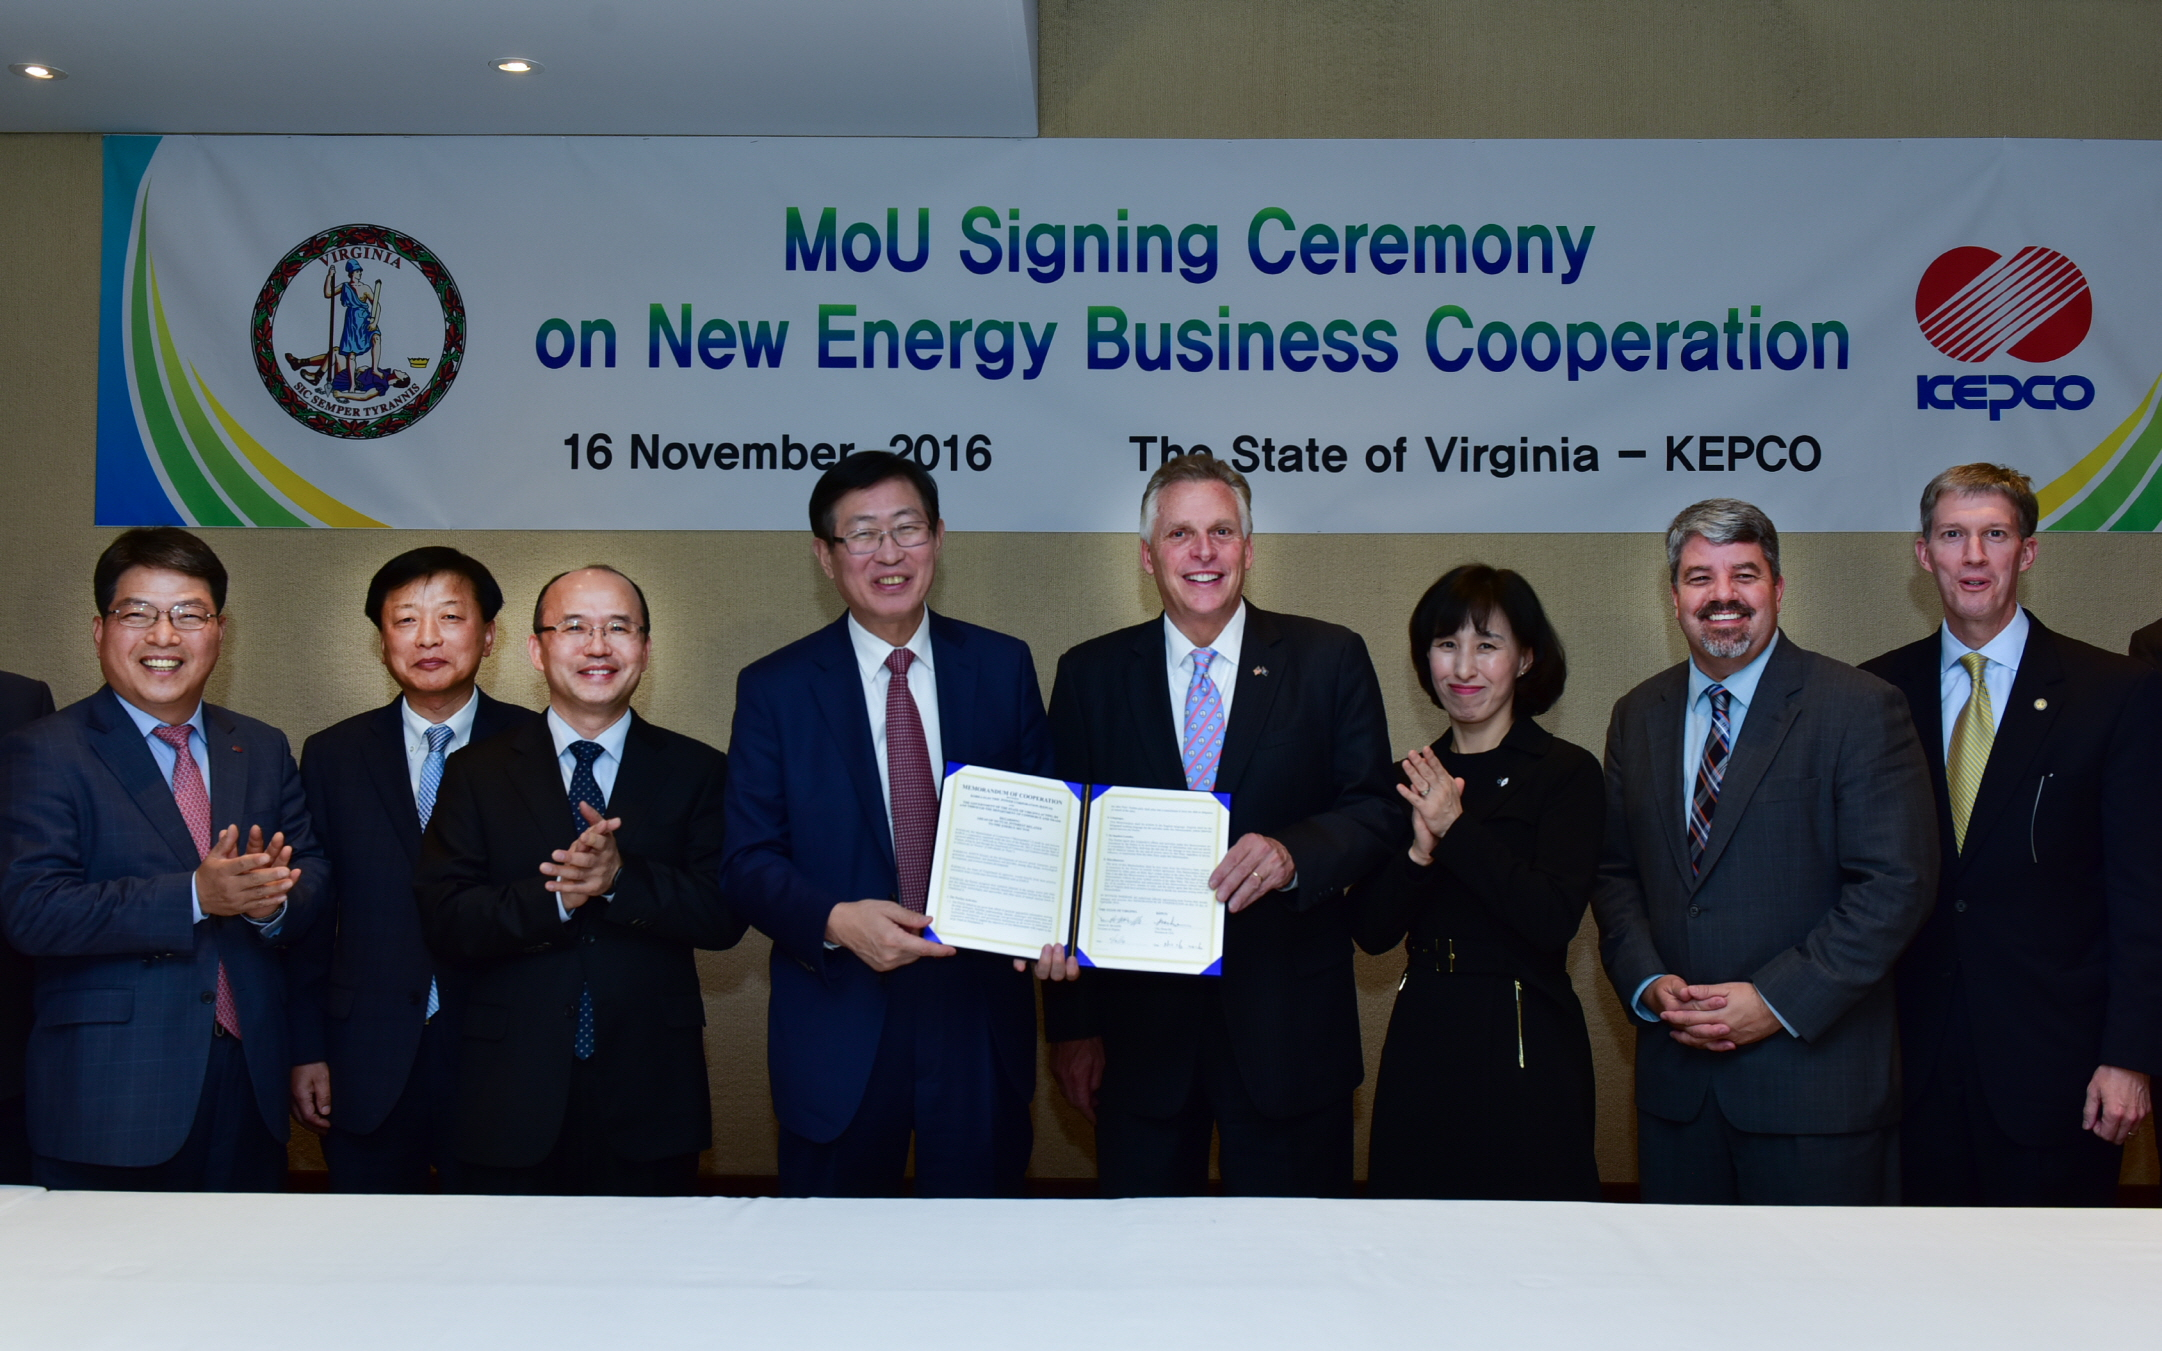 KEPCO president Cho Hwan-ik (fourth from left) and Virginia Governor Terry McAuliffe pose after signing an MOU with the State of Virginia on new energy business cooperation at the Grand Hyatt Seoul on November 16.